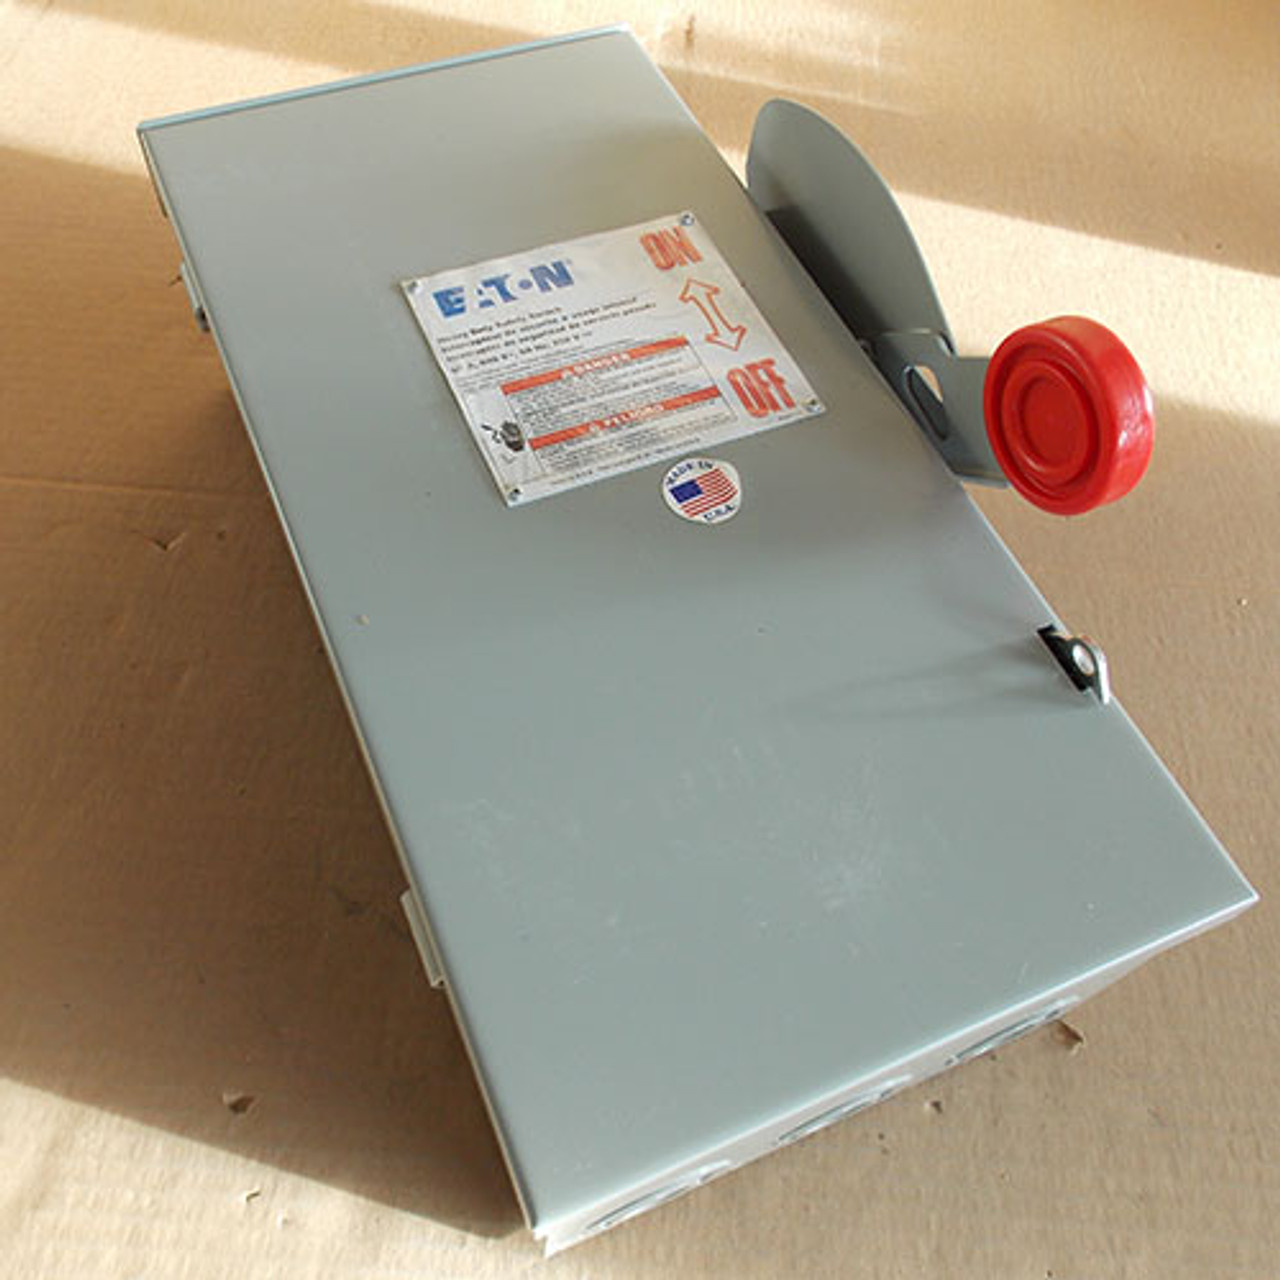 Eaton Cutler Hammer DH362URK Heavy Duty Non-Fusible Safety Switch 3P 60A 600VAC Nema 3R - New